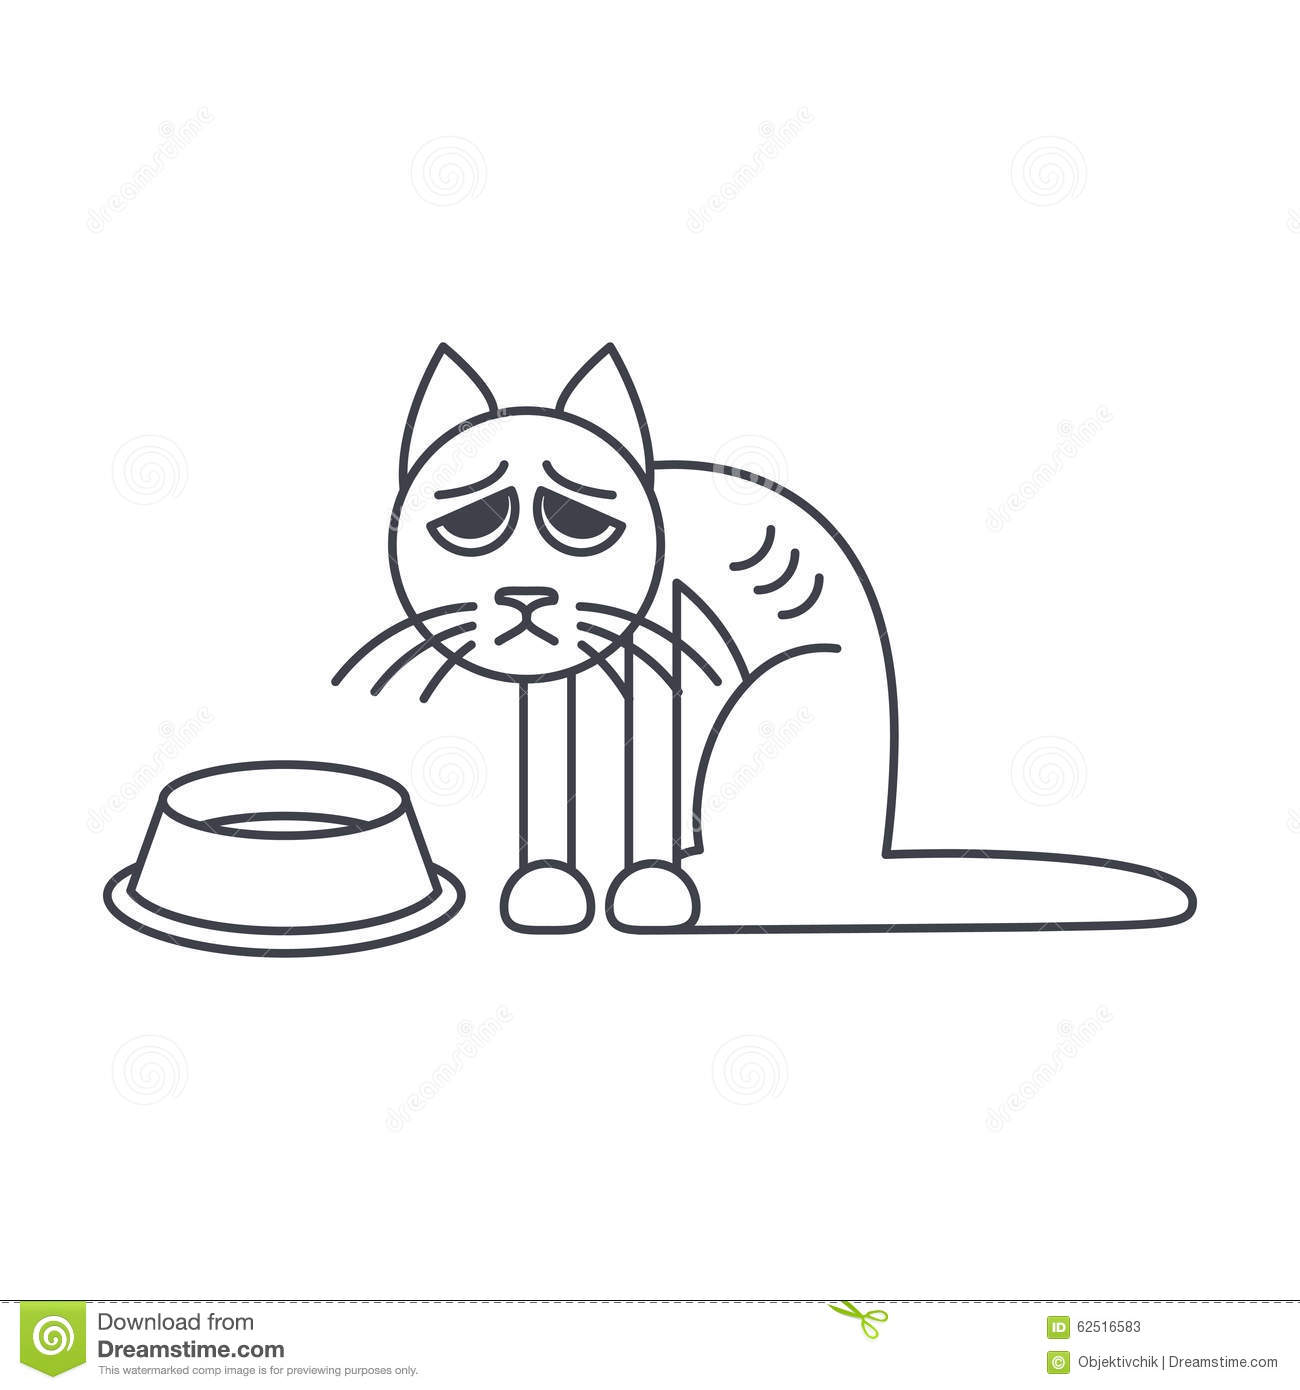 Poor Hungry Cat Line Icon Stock Vector Illustration Of Flat 62516583